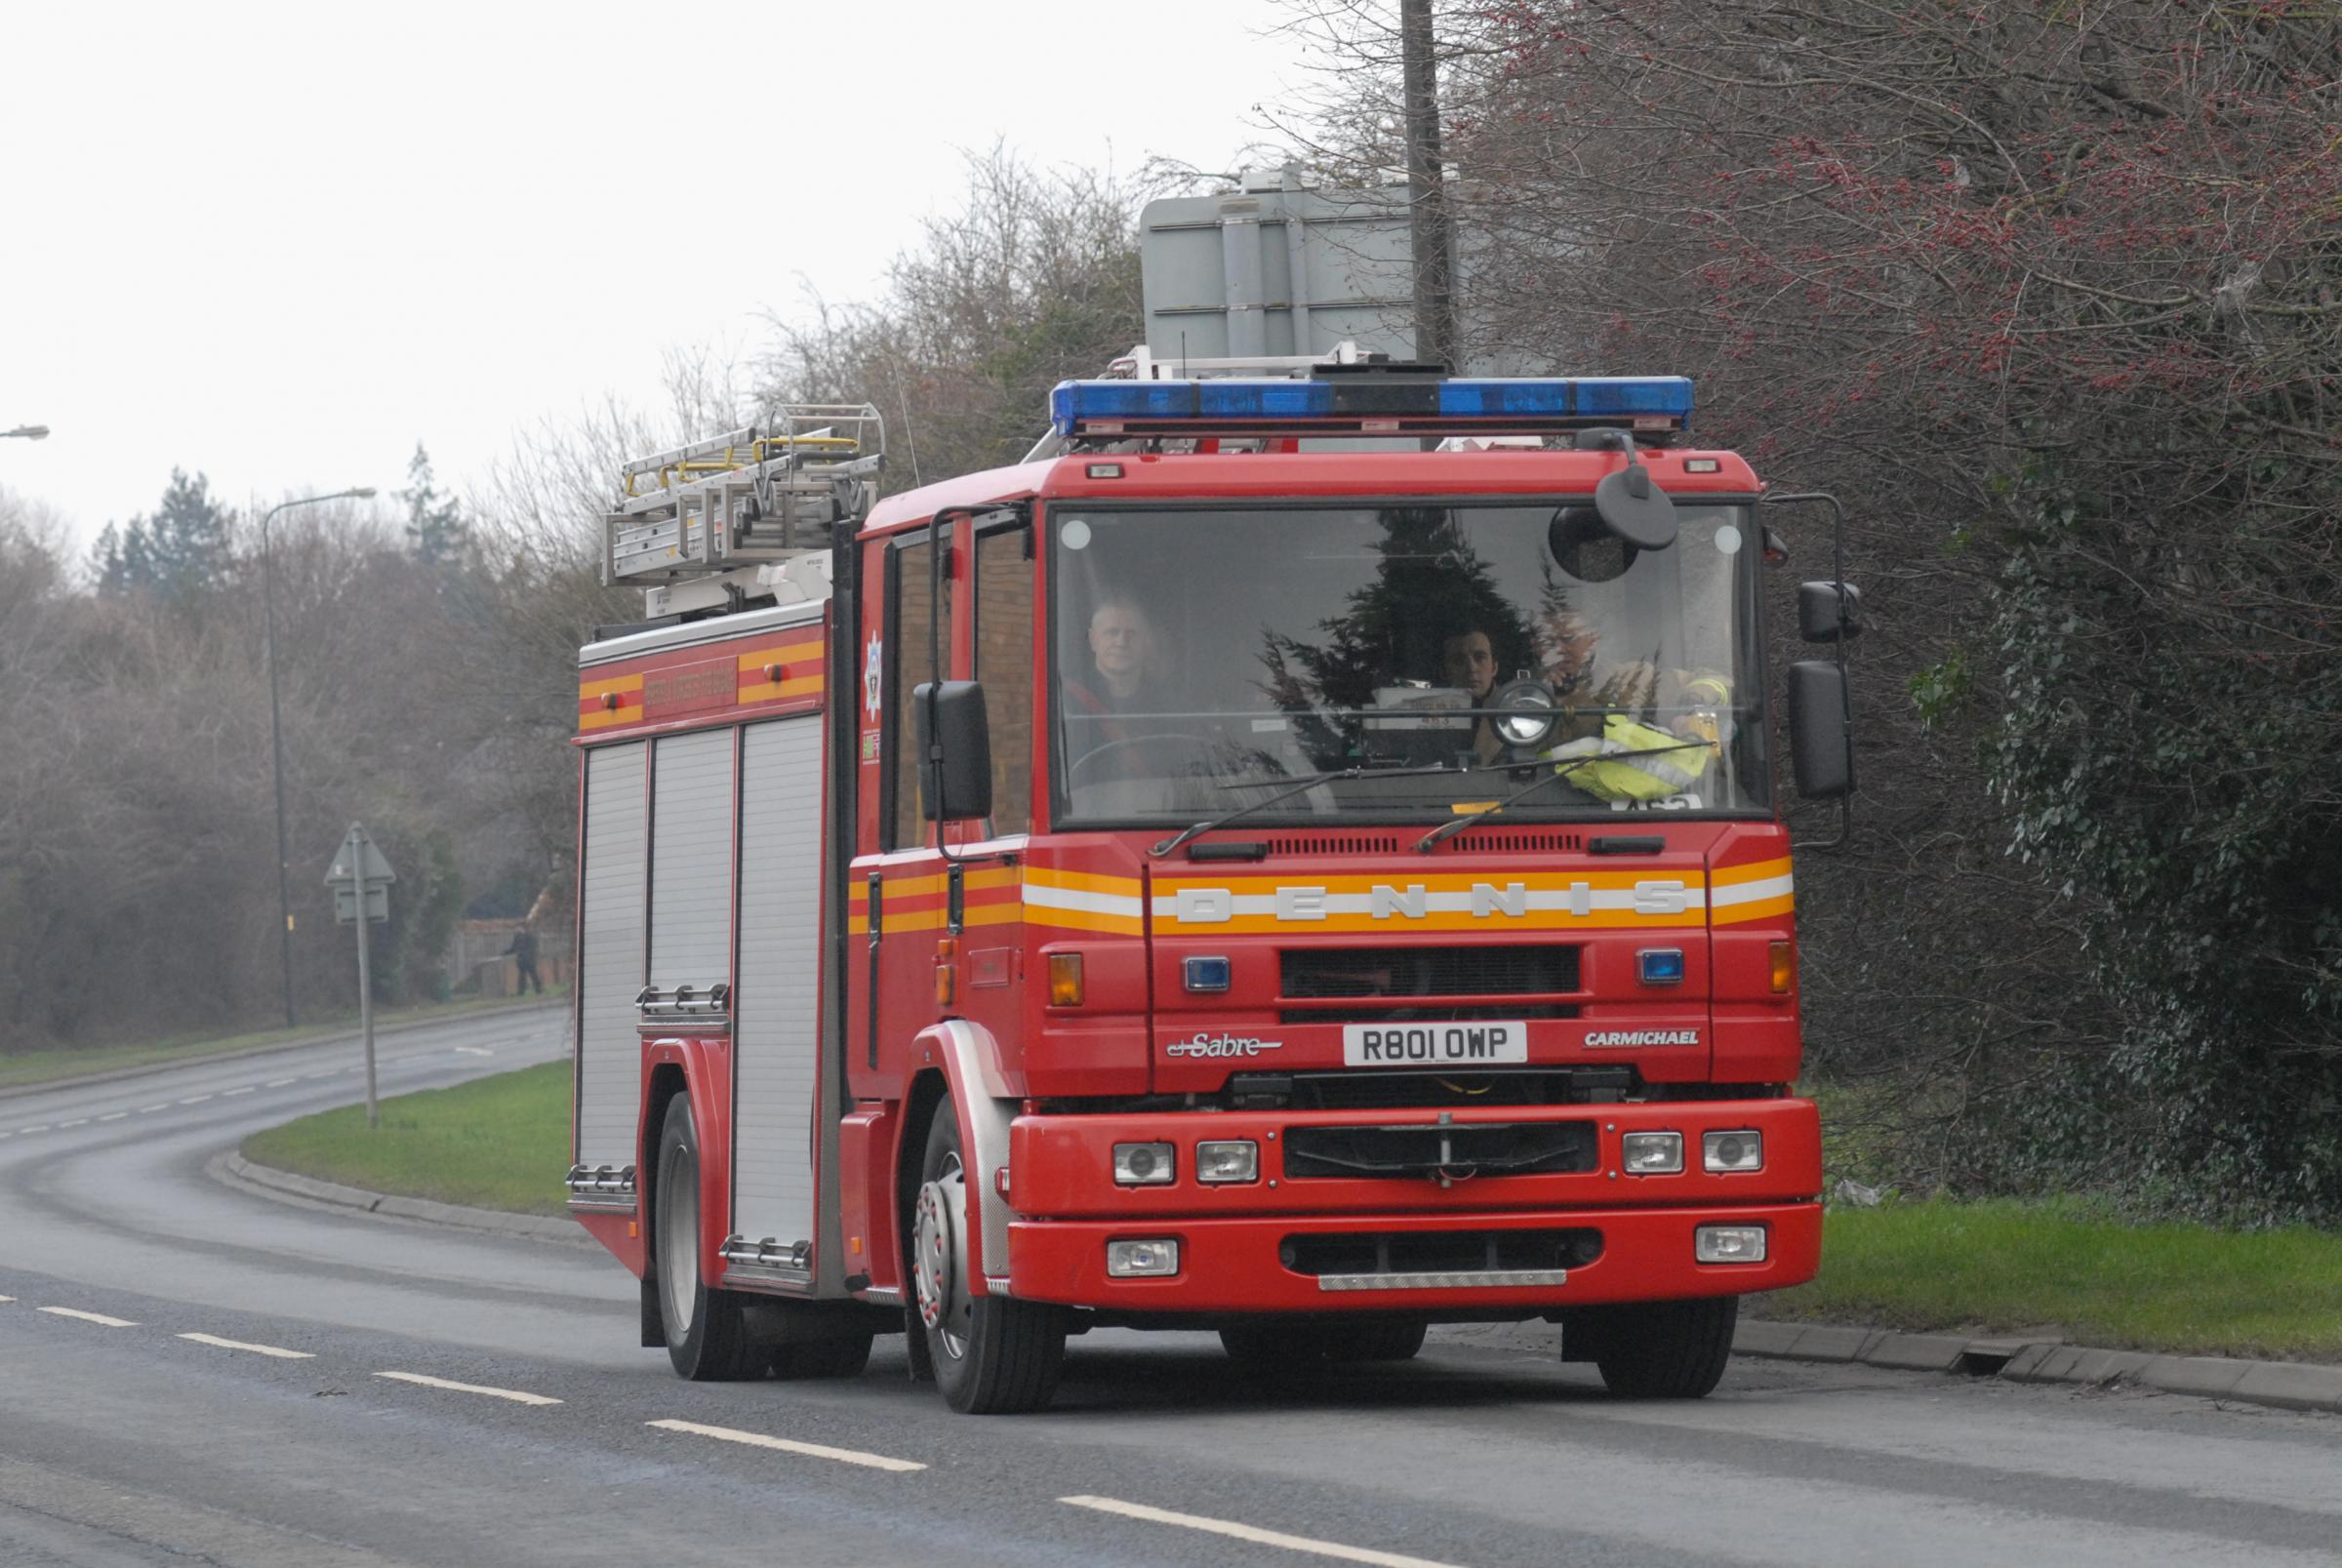 Iron left on leads to house fire in Hullbridge